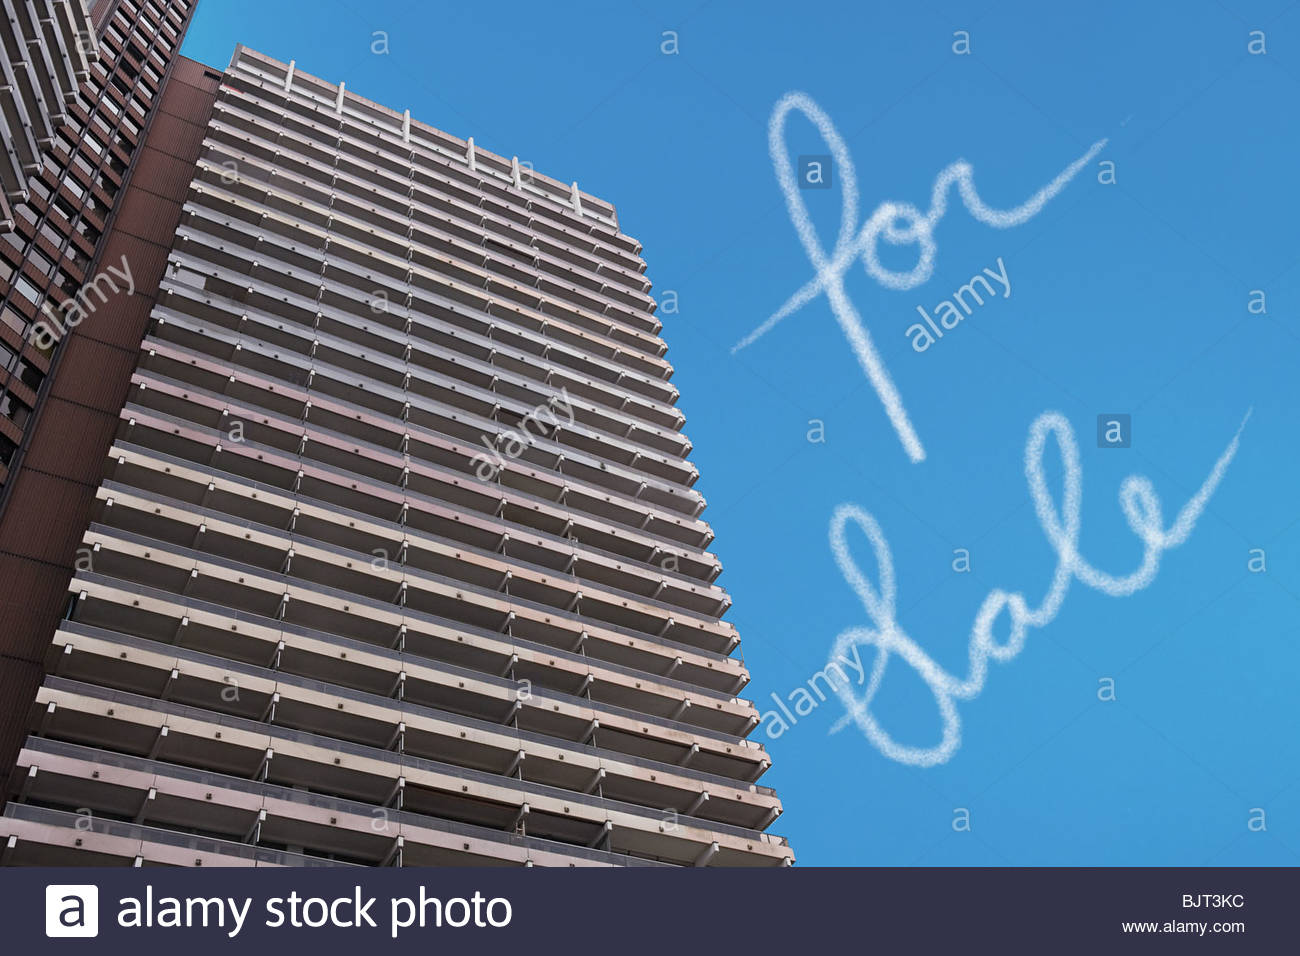 Big Letters Sale Stockfotos & Big Letters Sale Bilder - Alamy